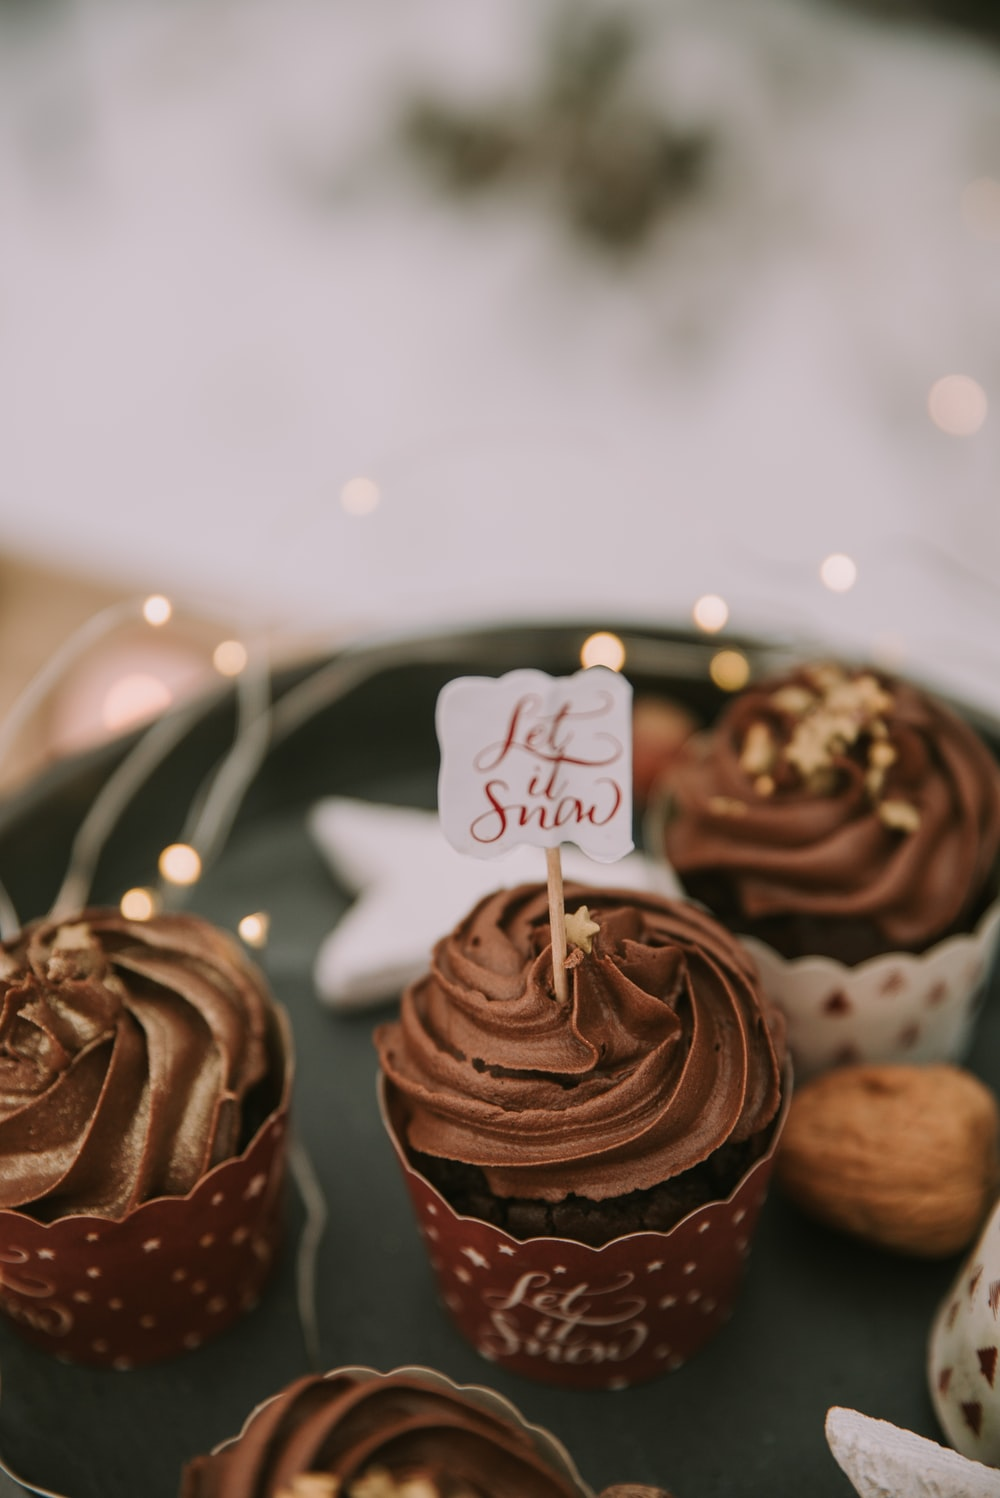 several chocolate cupcakes